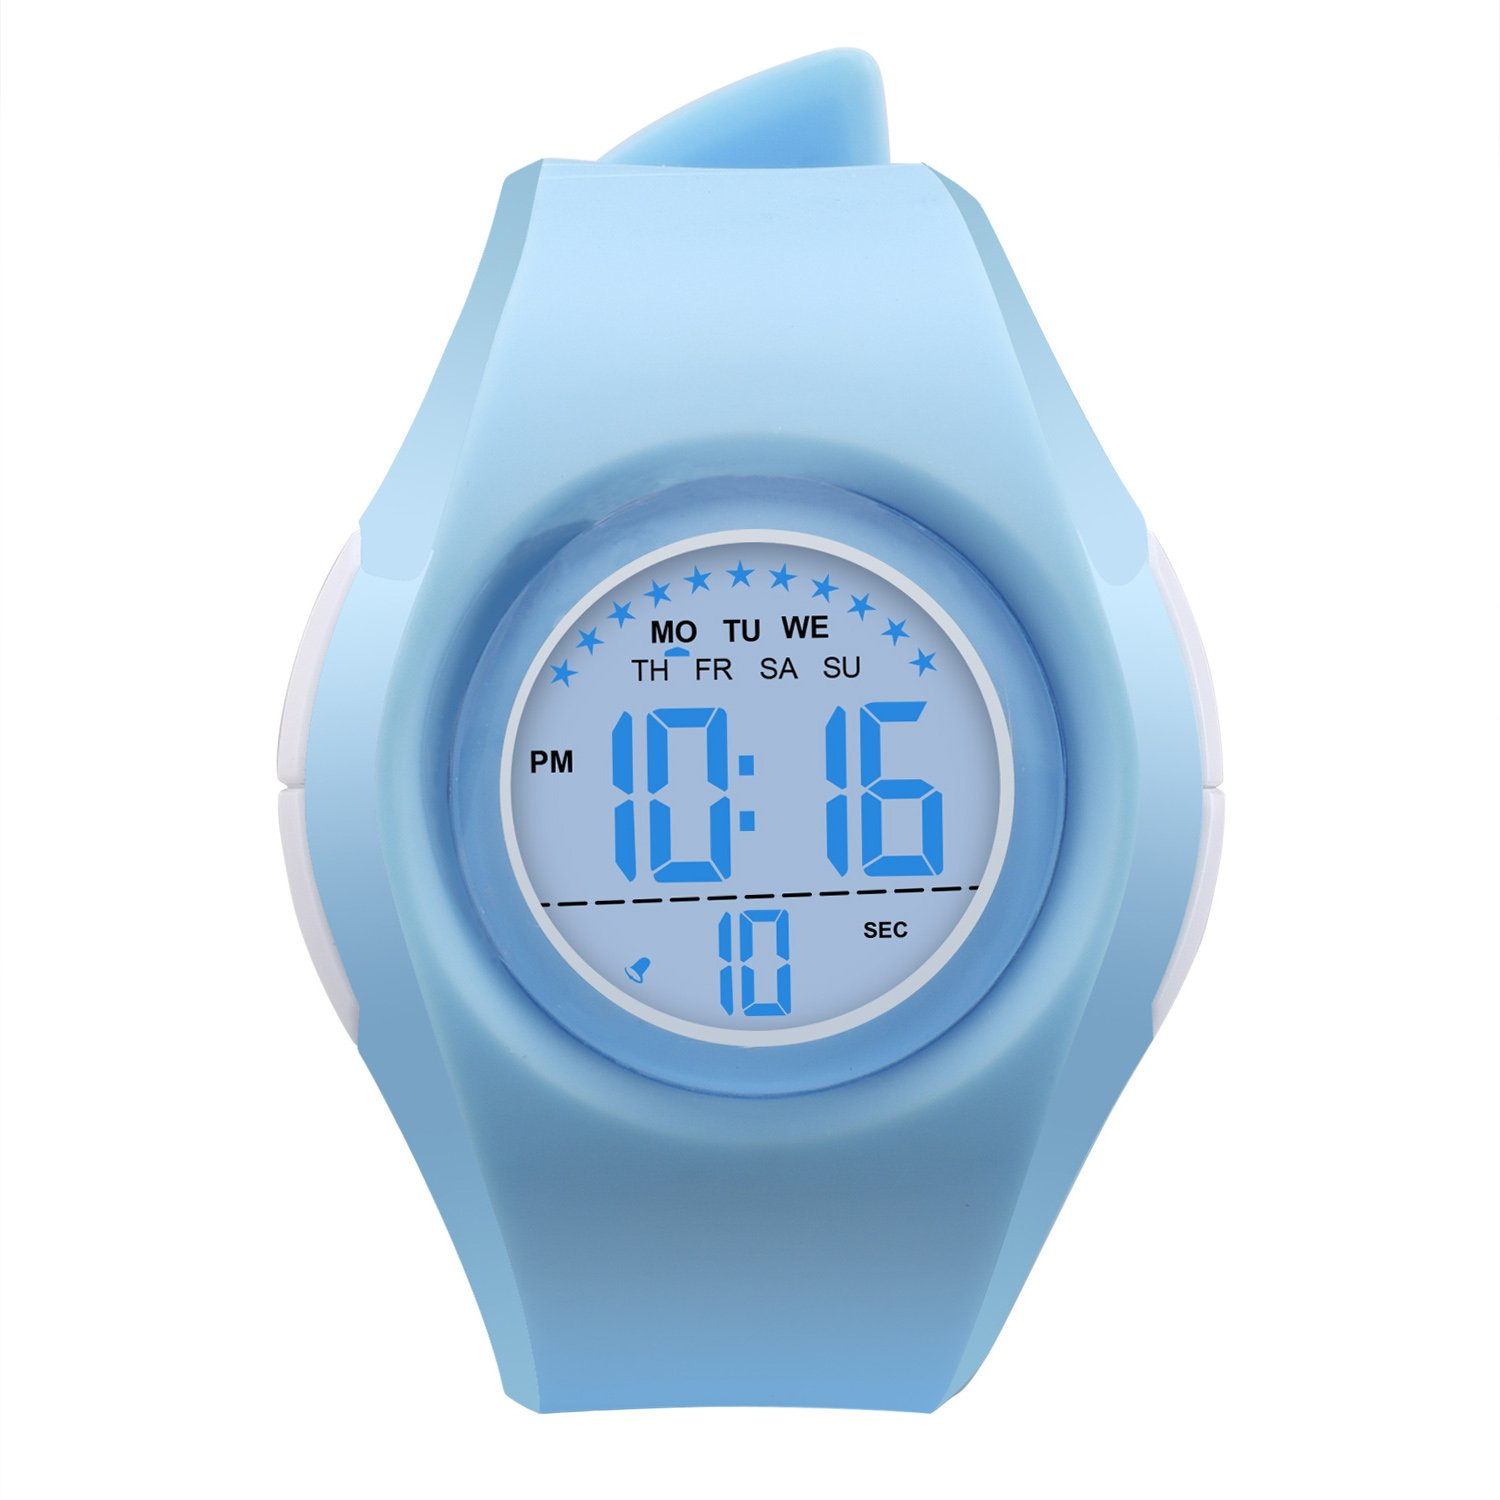 Kids Watch Waterproof Children Electronic Watch - Lighting Watch 50M Waterproof for Outdoor Sports,LED Digital Stopwatch with Chronograph, Alarm,Time Window Child Wrist Watch for Boys, Girls (Blue) by PERSUPER